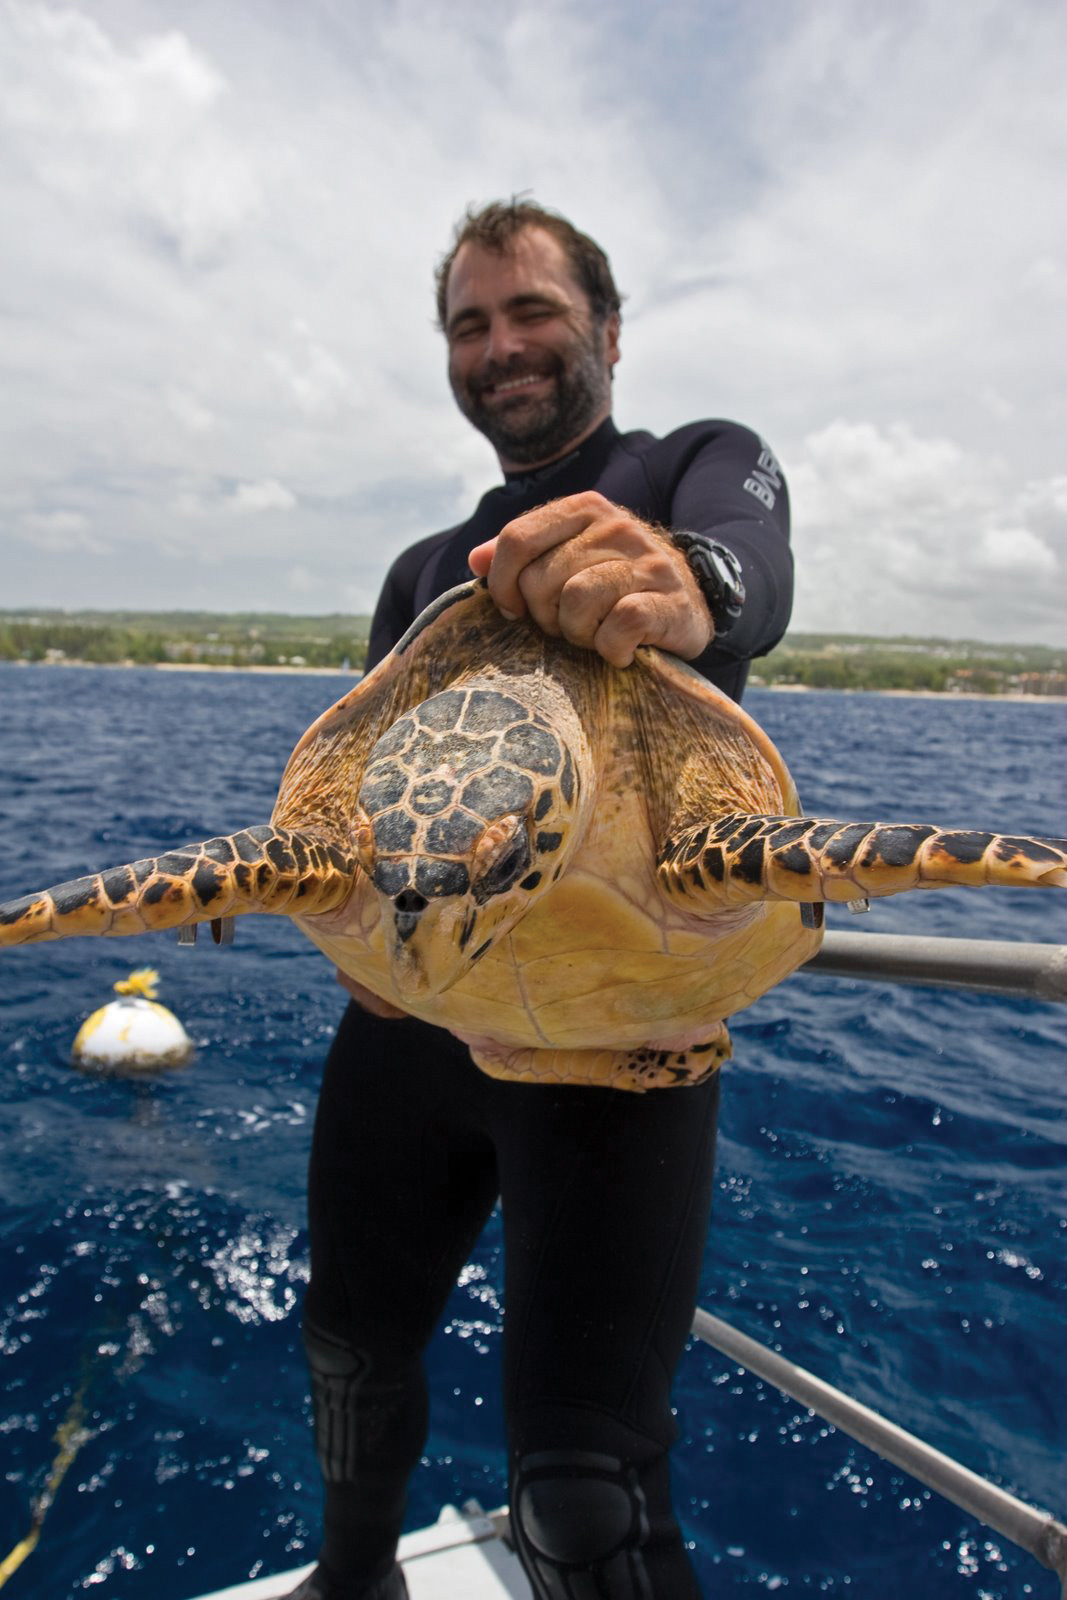 Barry Krueger prepares to release a hawksbill turtle after conducting research aboard a dive boat in Barbados. © Brian J. Hutchinson